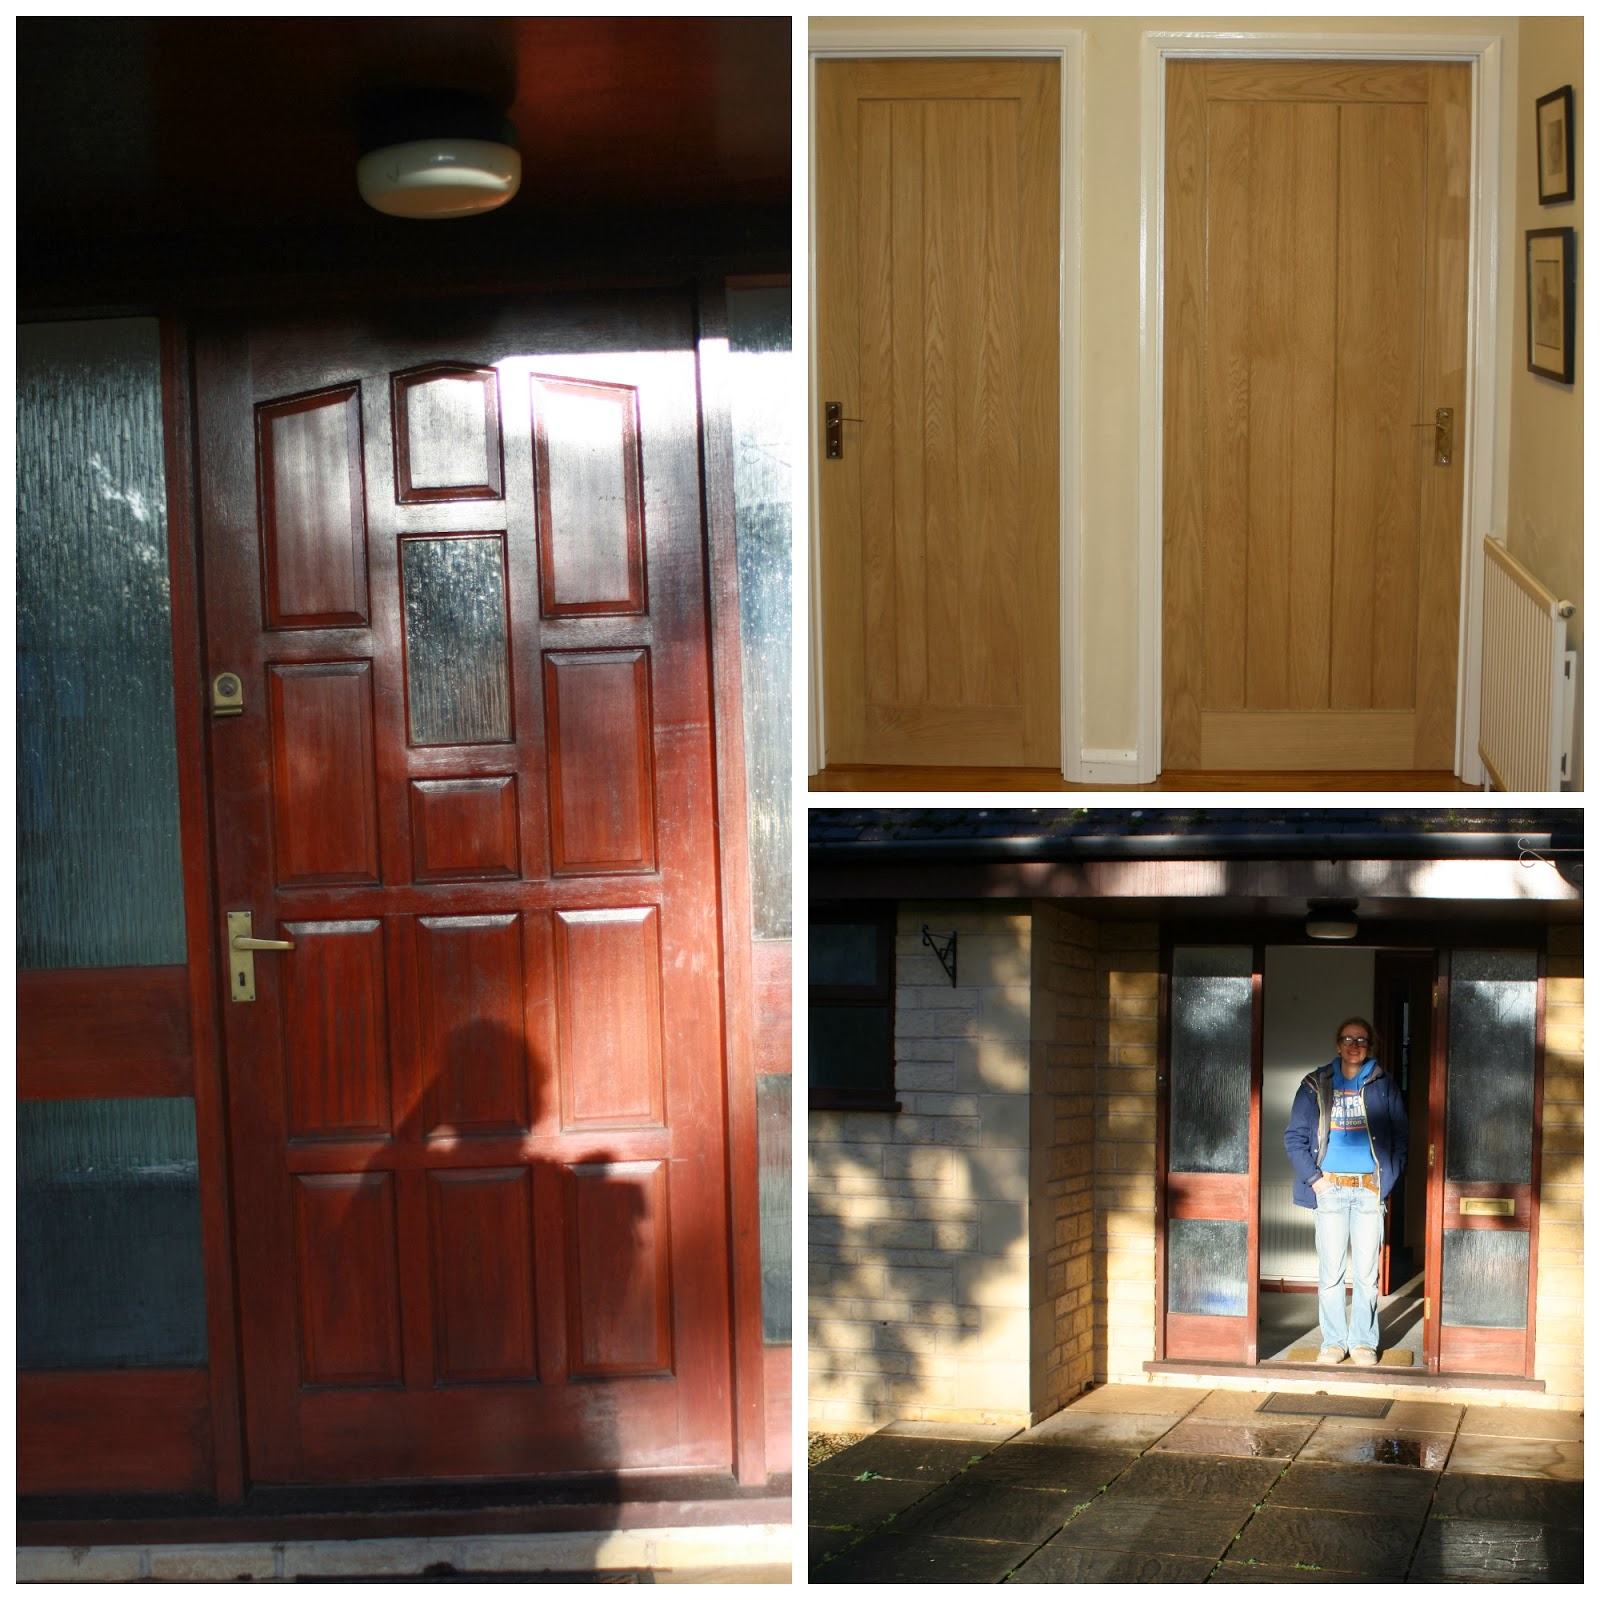 New-house-doors-ageing-growing-old